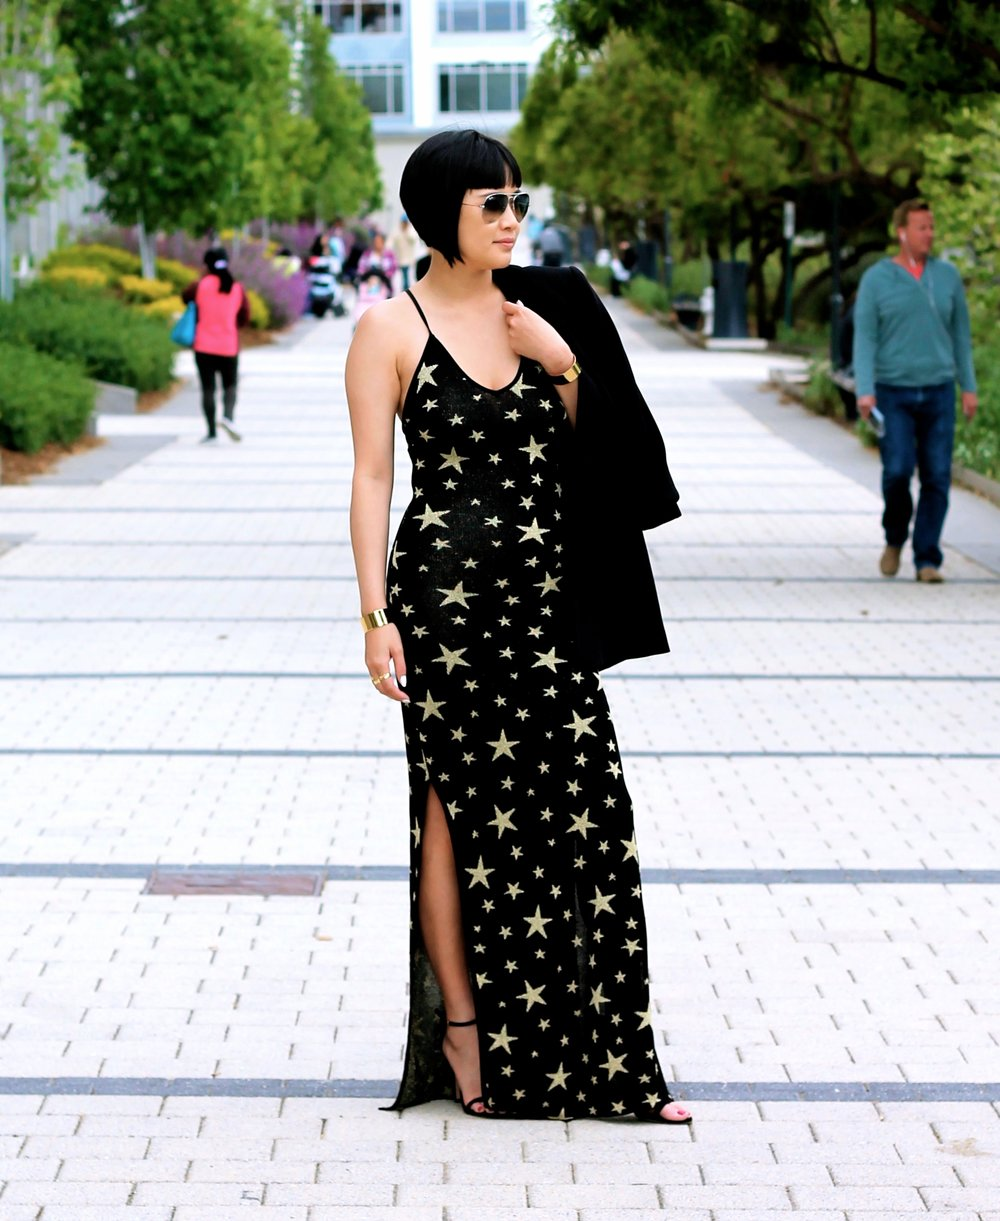 House of Harlow dress, Asos jacket, Stuart Weitzman shoes, Ray-Ban sunglasses, Svelte Metals cuffs